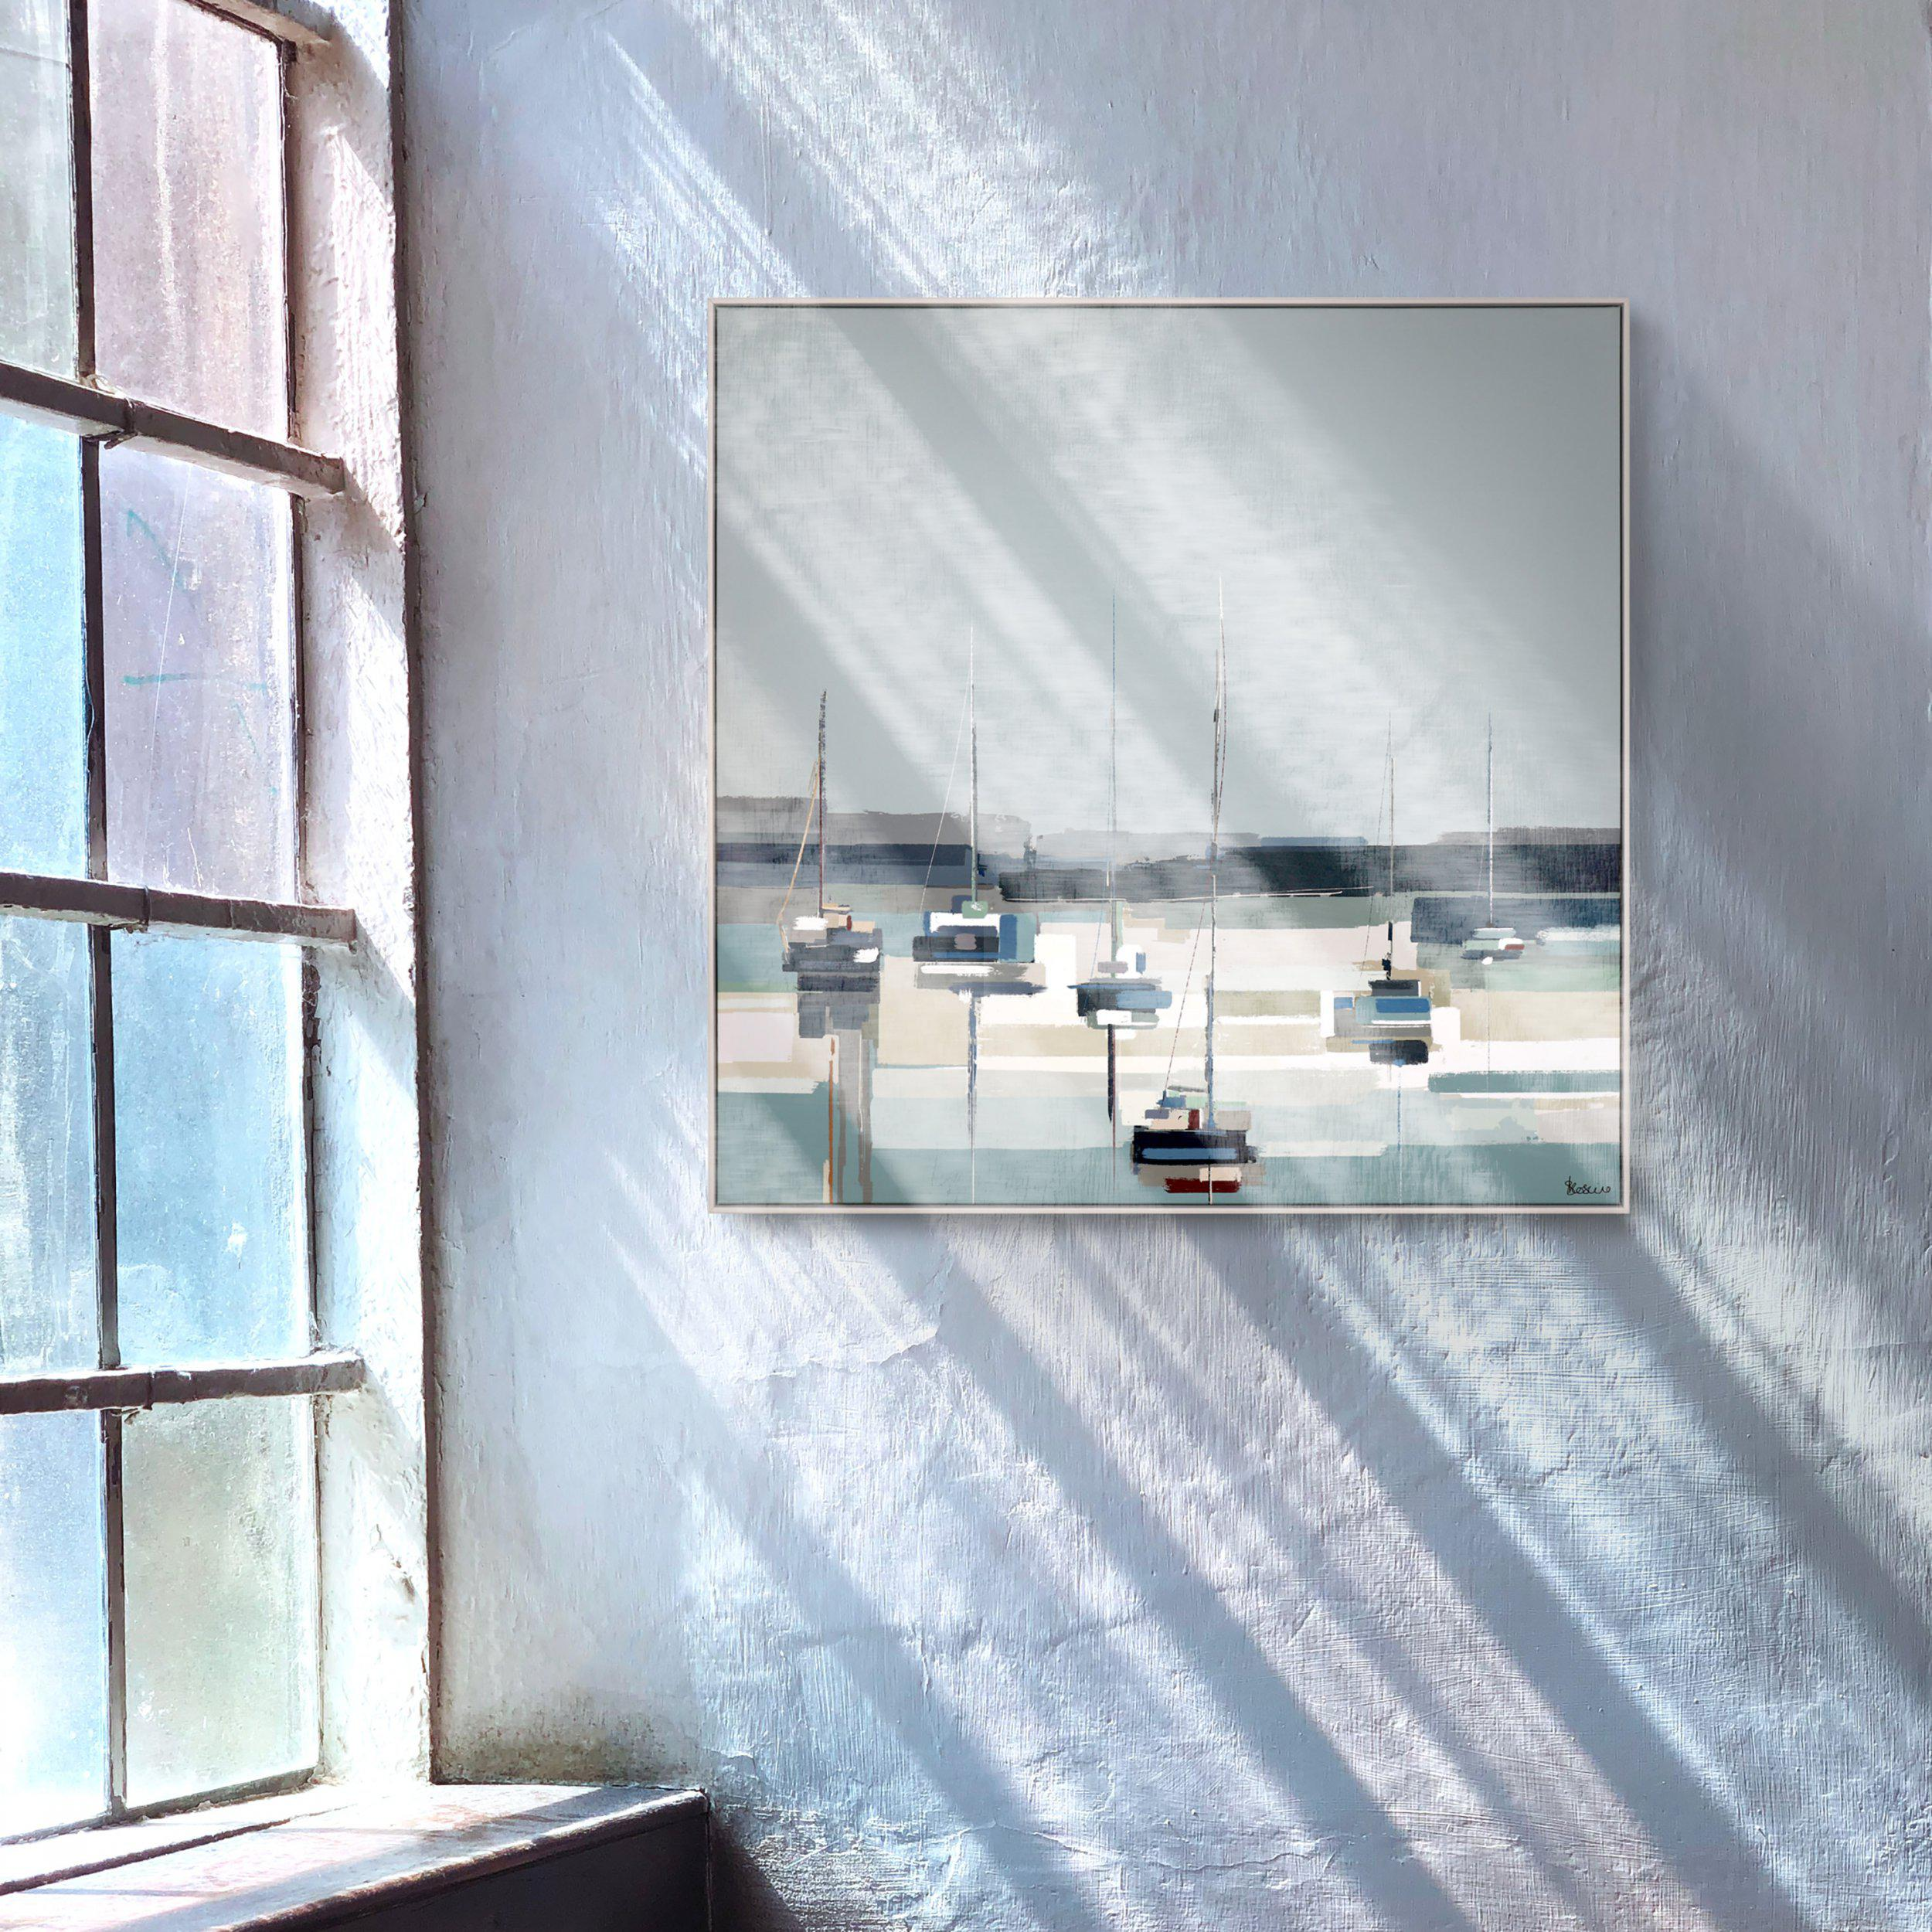 Art Gallery - Harbour Reflections Painting by Artist Sabrina Roscino - Framed Print For Sale - Room Display